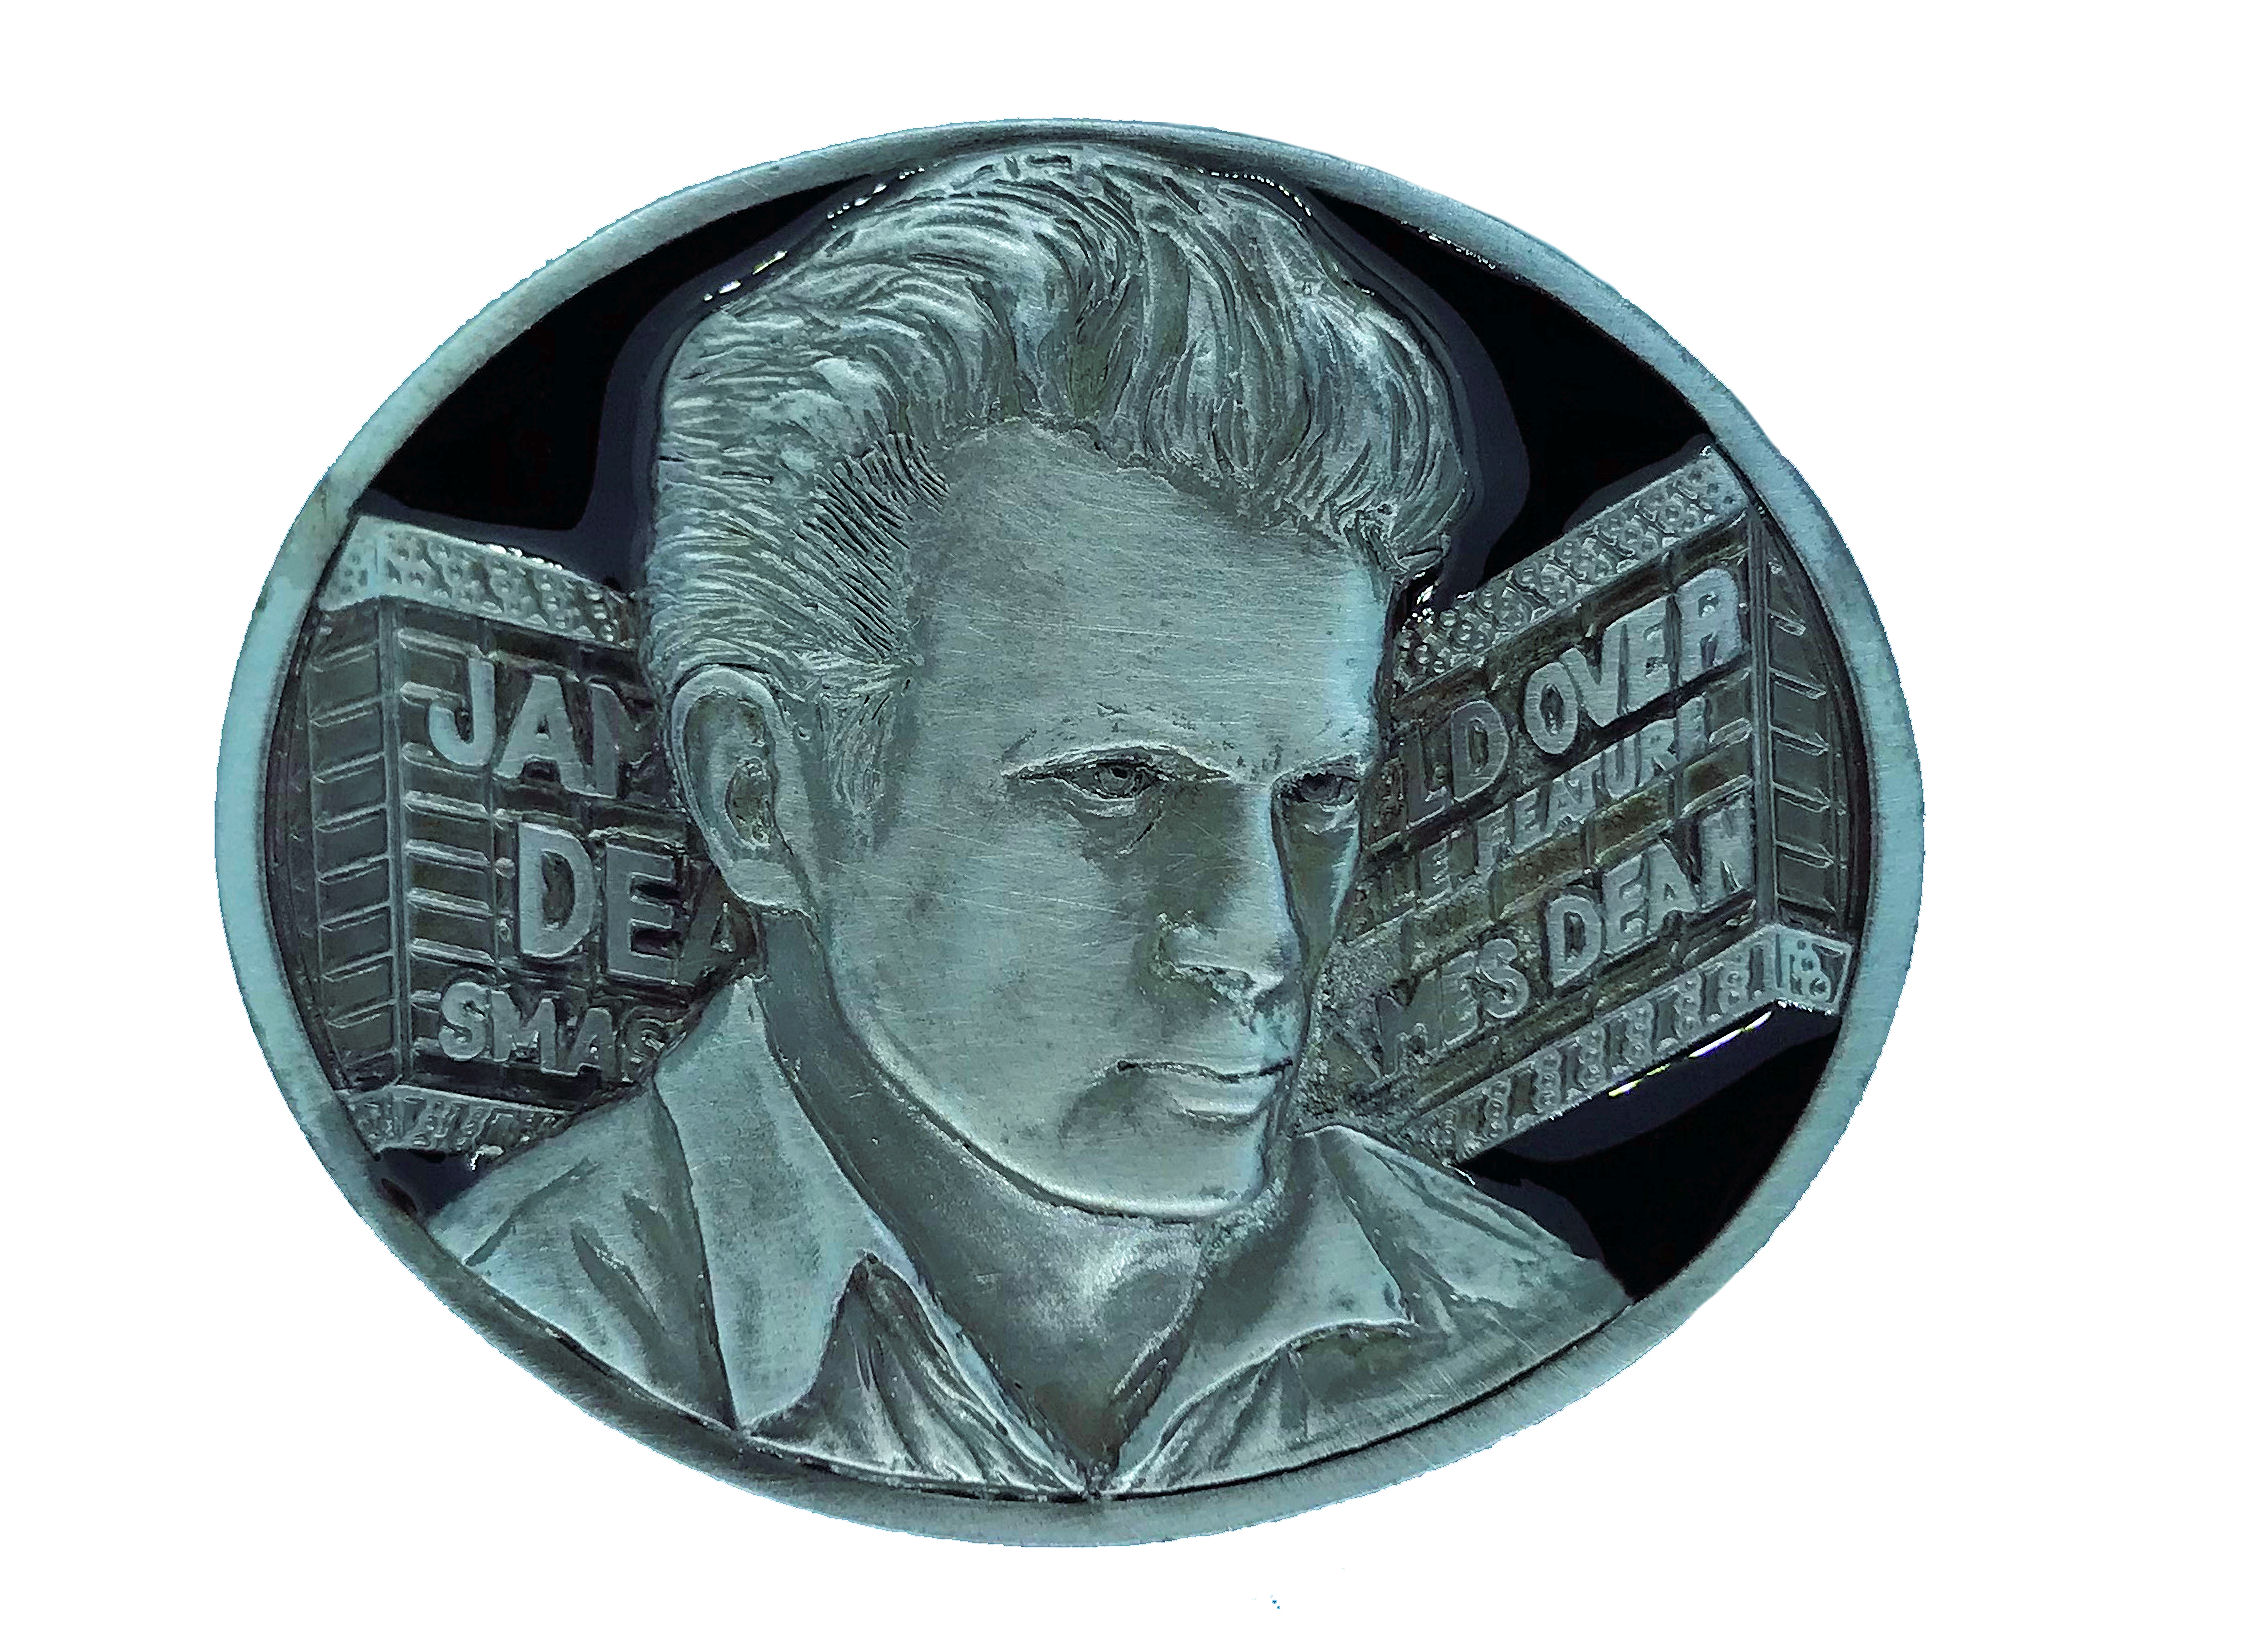 James Dean - Marquee Black Belt Buckle